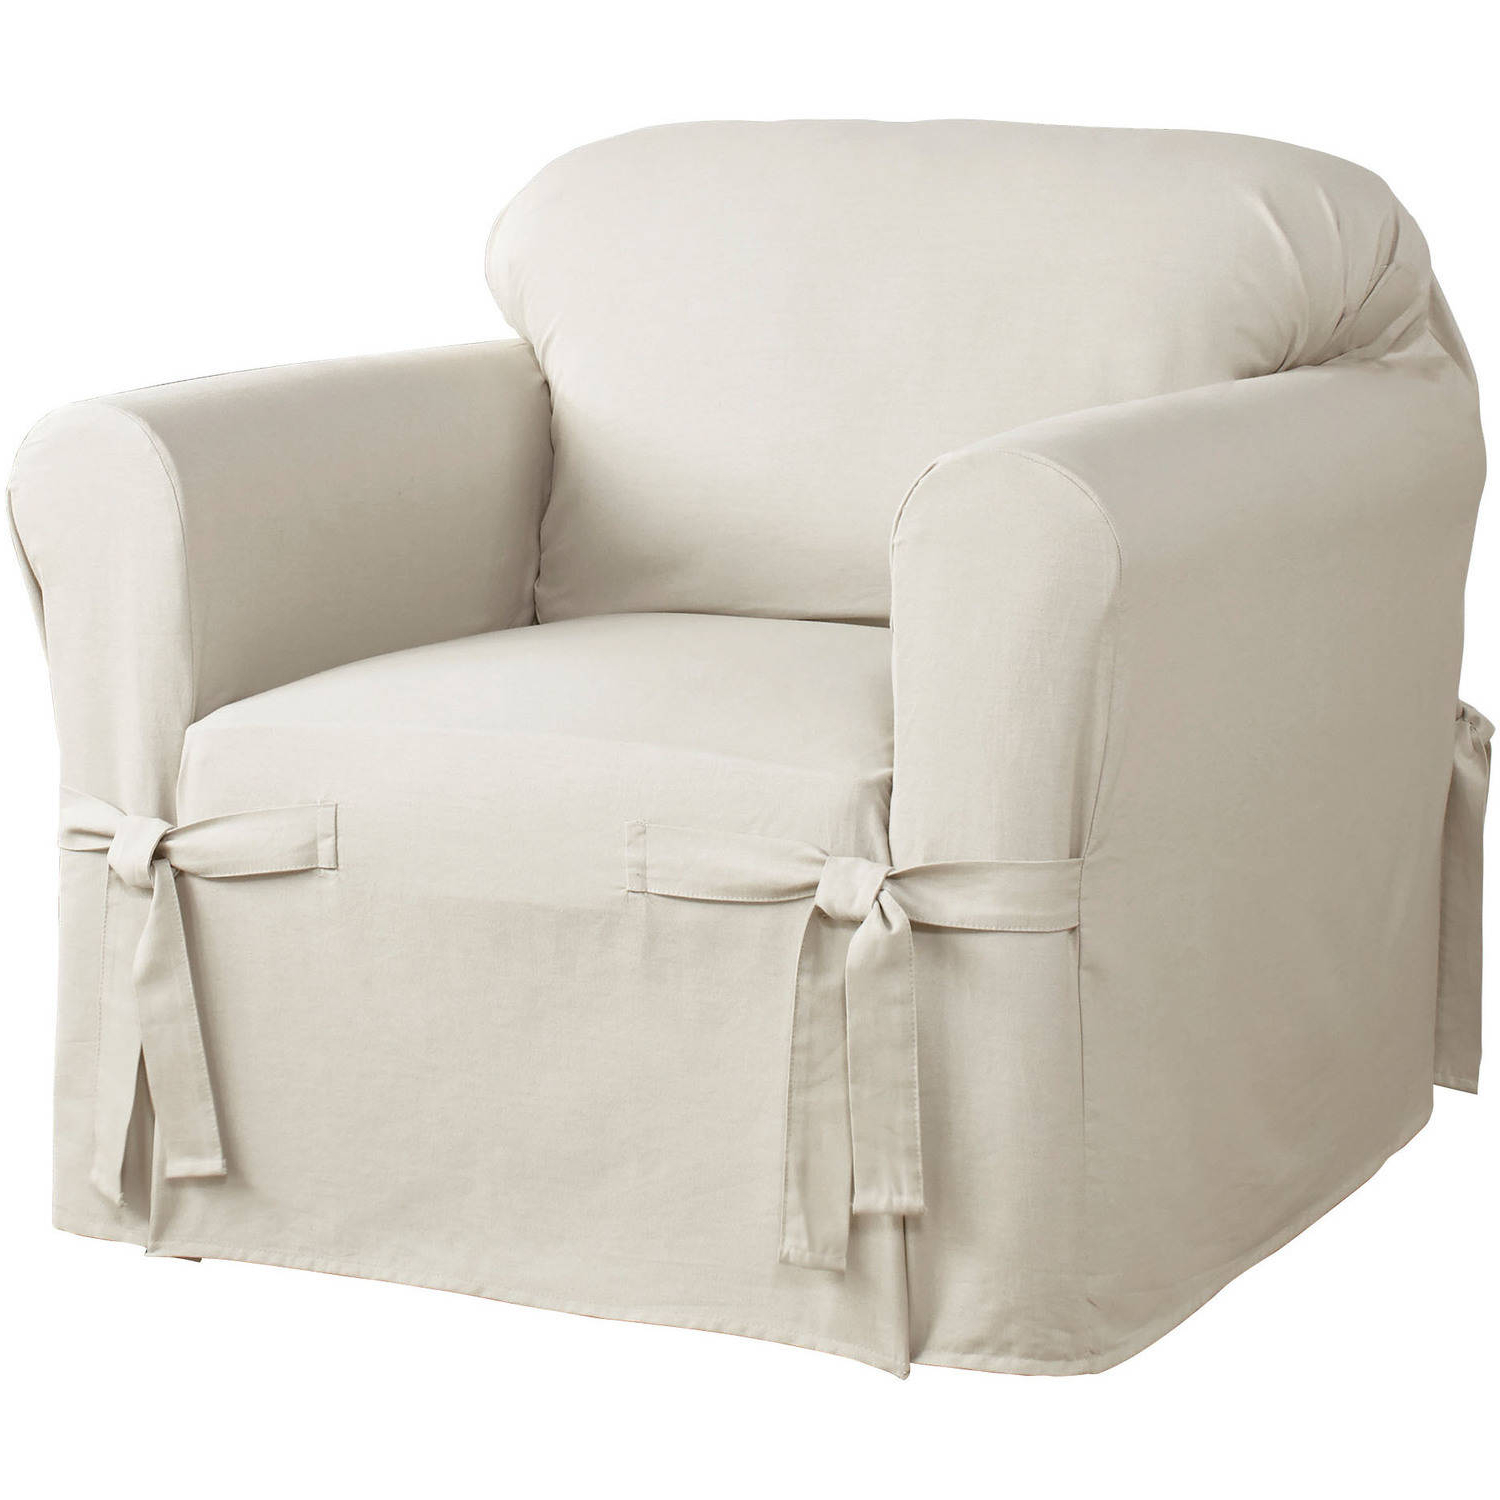 Slipcovers For Sofas And Chairs Within Widely Used Serta Relaxed Fit Cotton Duck Furniture Slipcover, Chair 1 Piece Box (View 17 of 20)